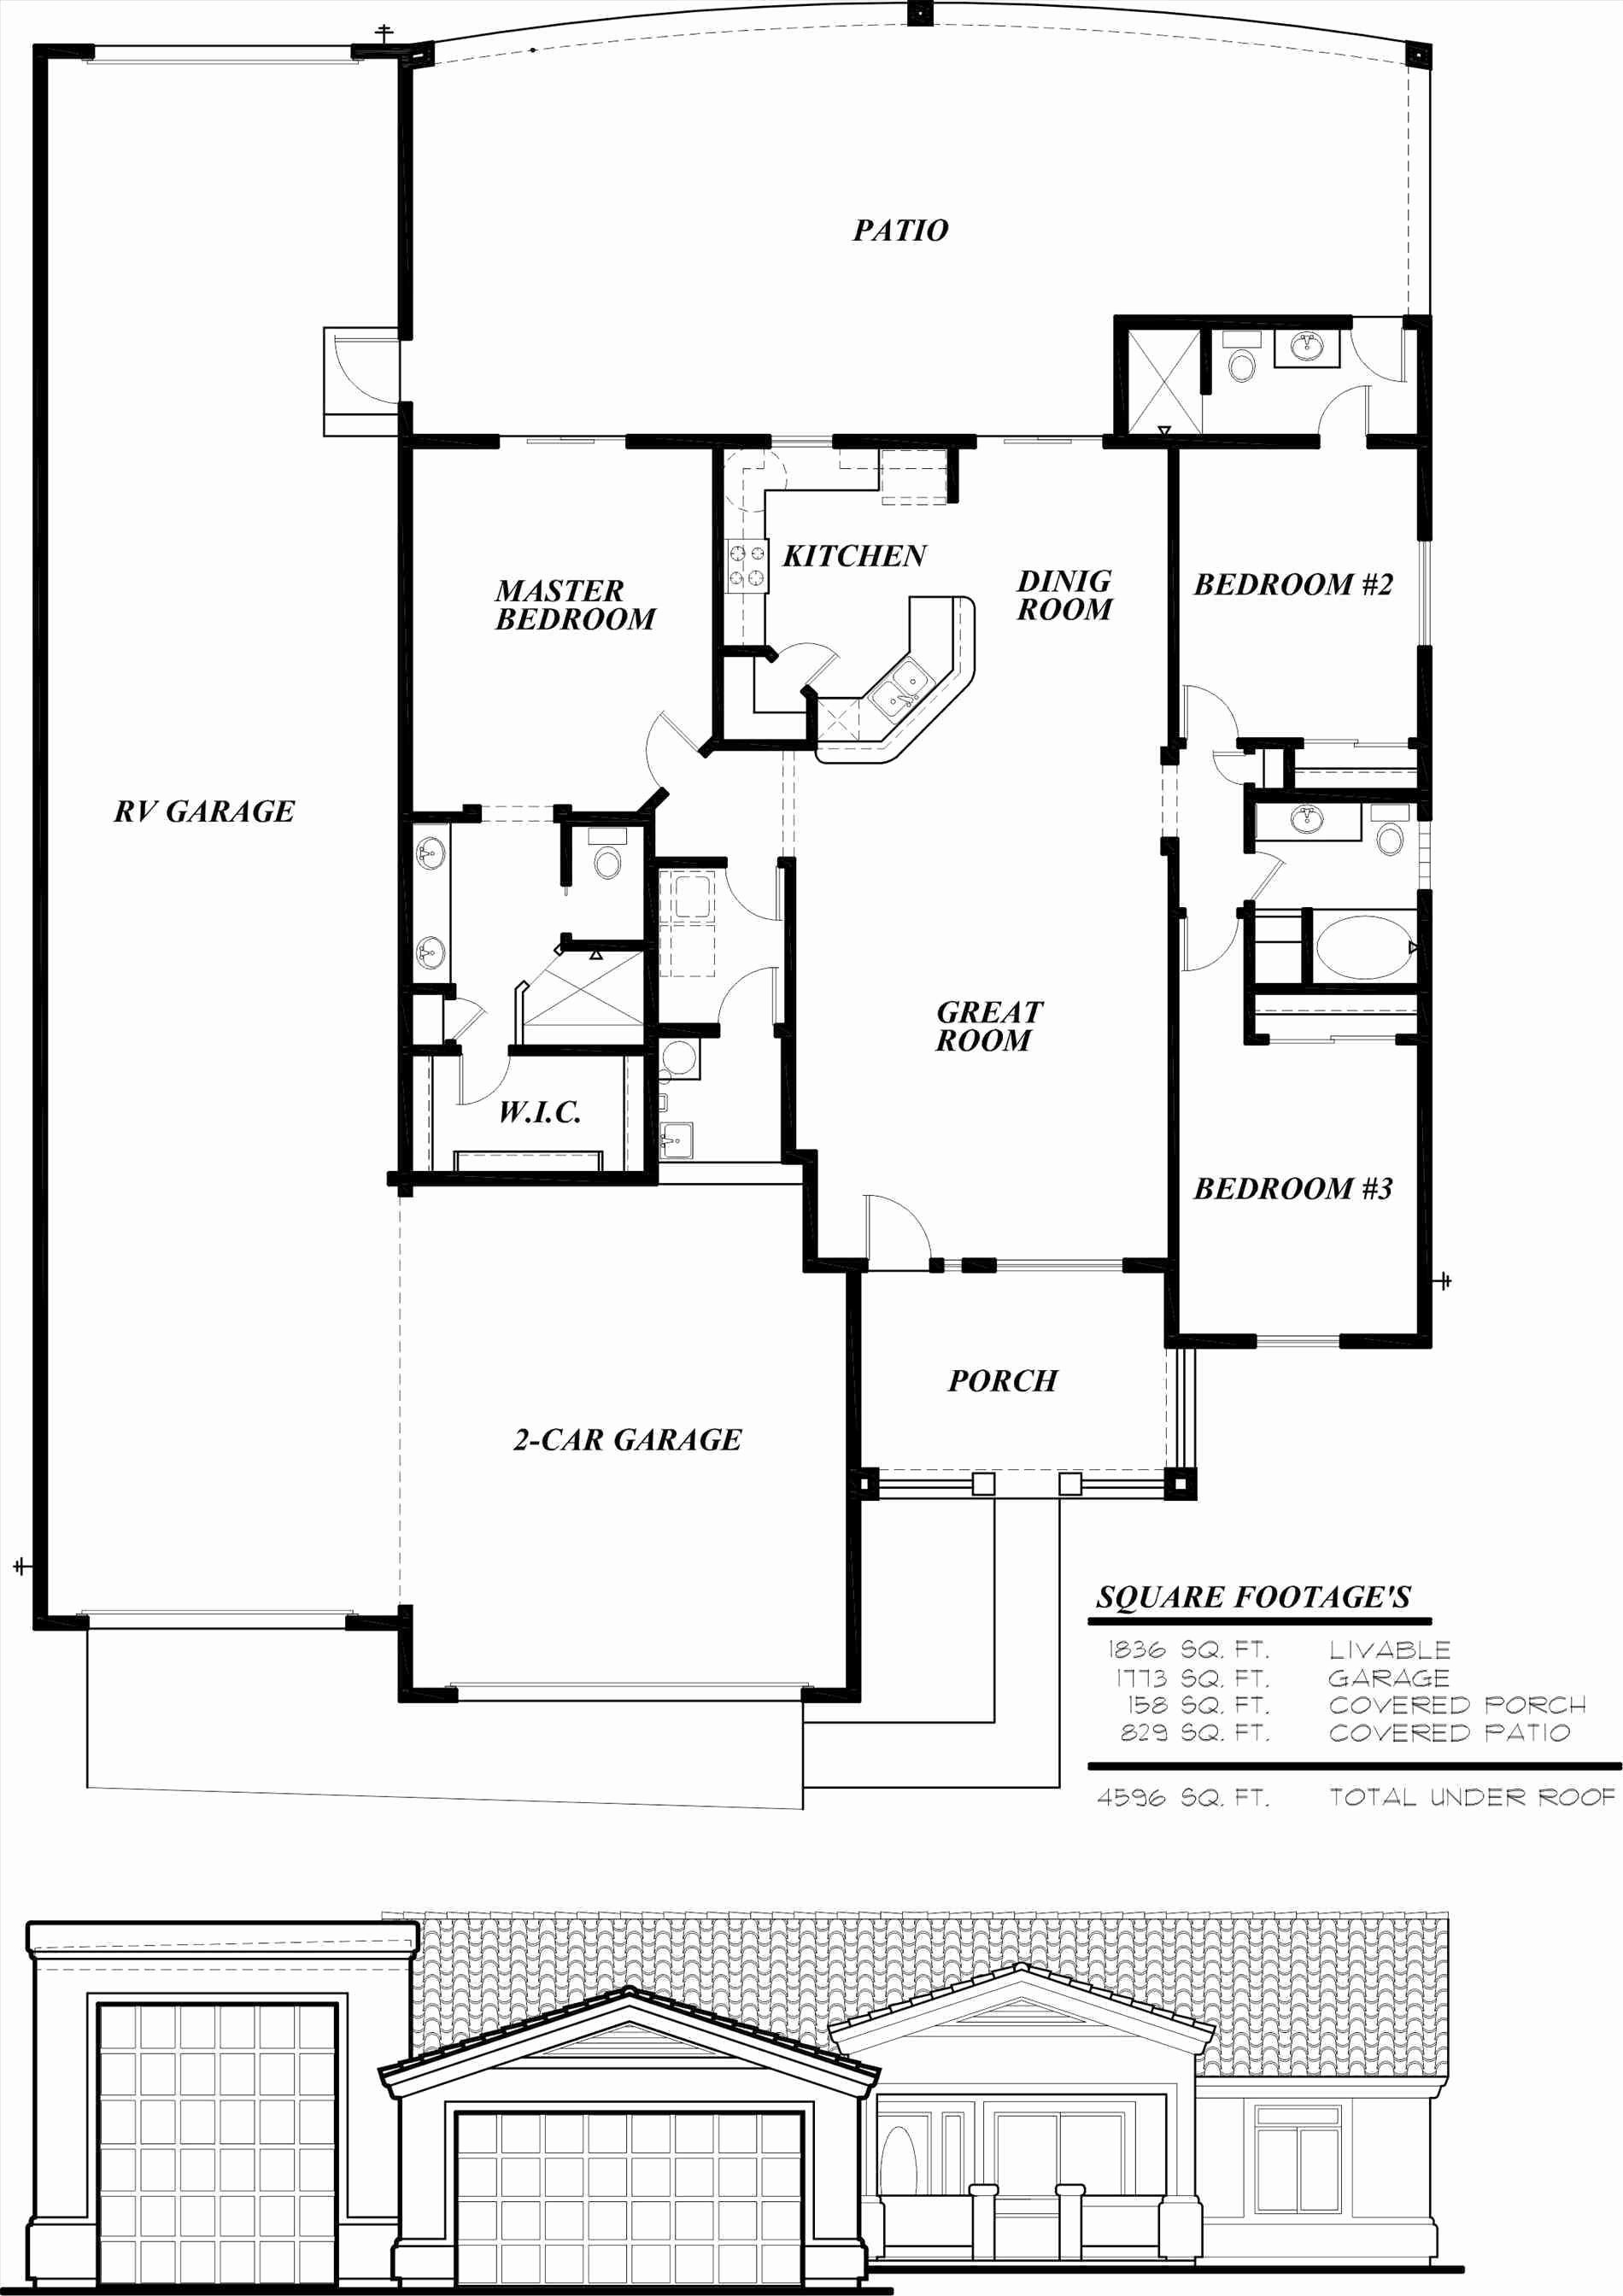 2 bedroom 5th wheel floor plans luxury rv garage floor plans we - 2 Bedroom 5th Wheel Floor Plans